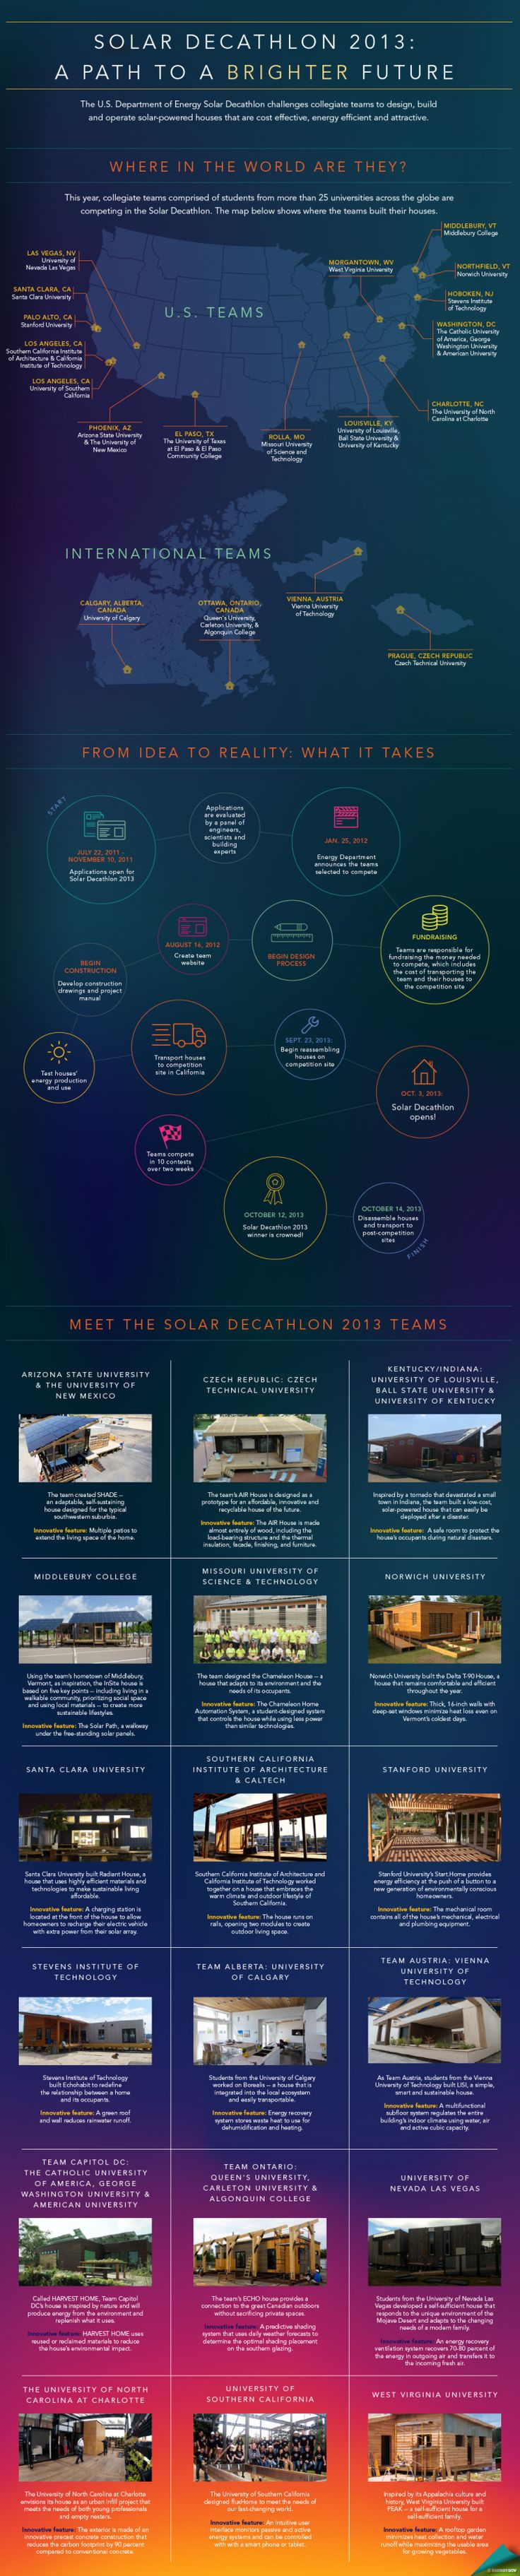 Solar Decathlon 2013: The Path to a Brighter Future -- takes a look at the teams competing in this year's competition.